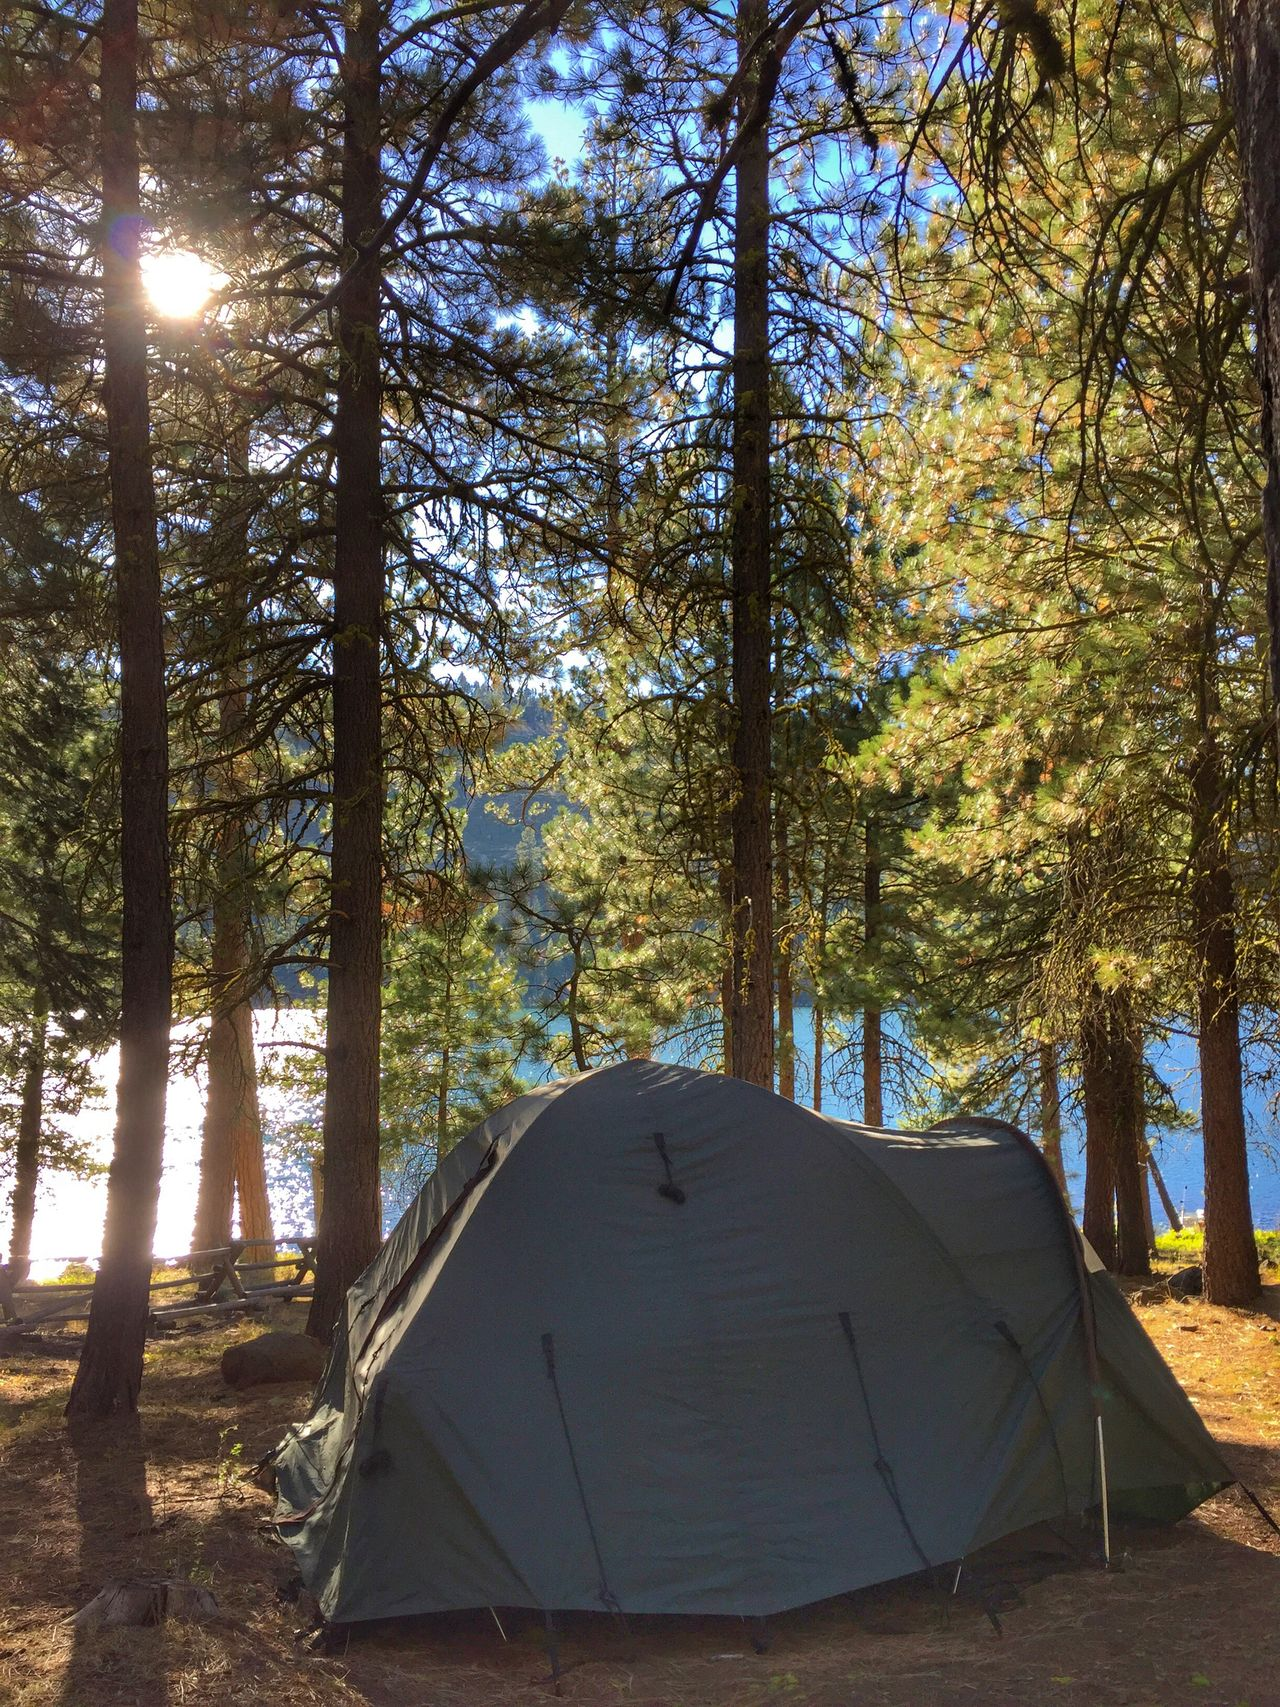 CAMPING AT BLUE LAKE, CALIFORNIA Camp Tent Nature Outdoors Lake View Lakeshore Modoc County California Blue Lake